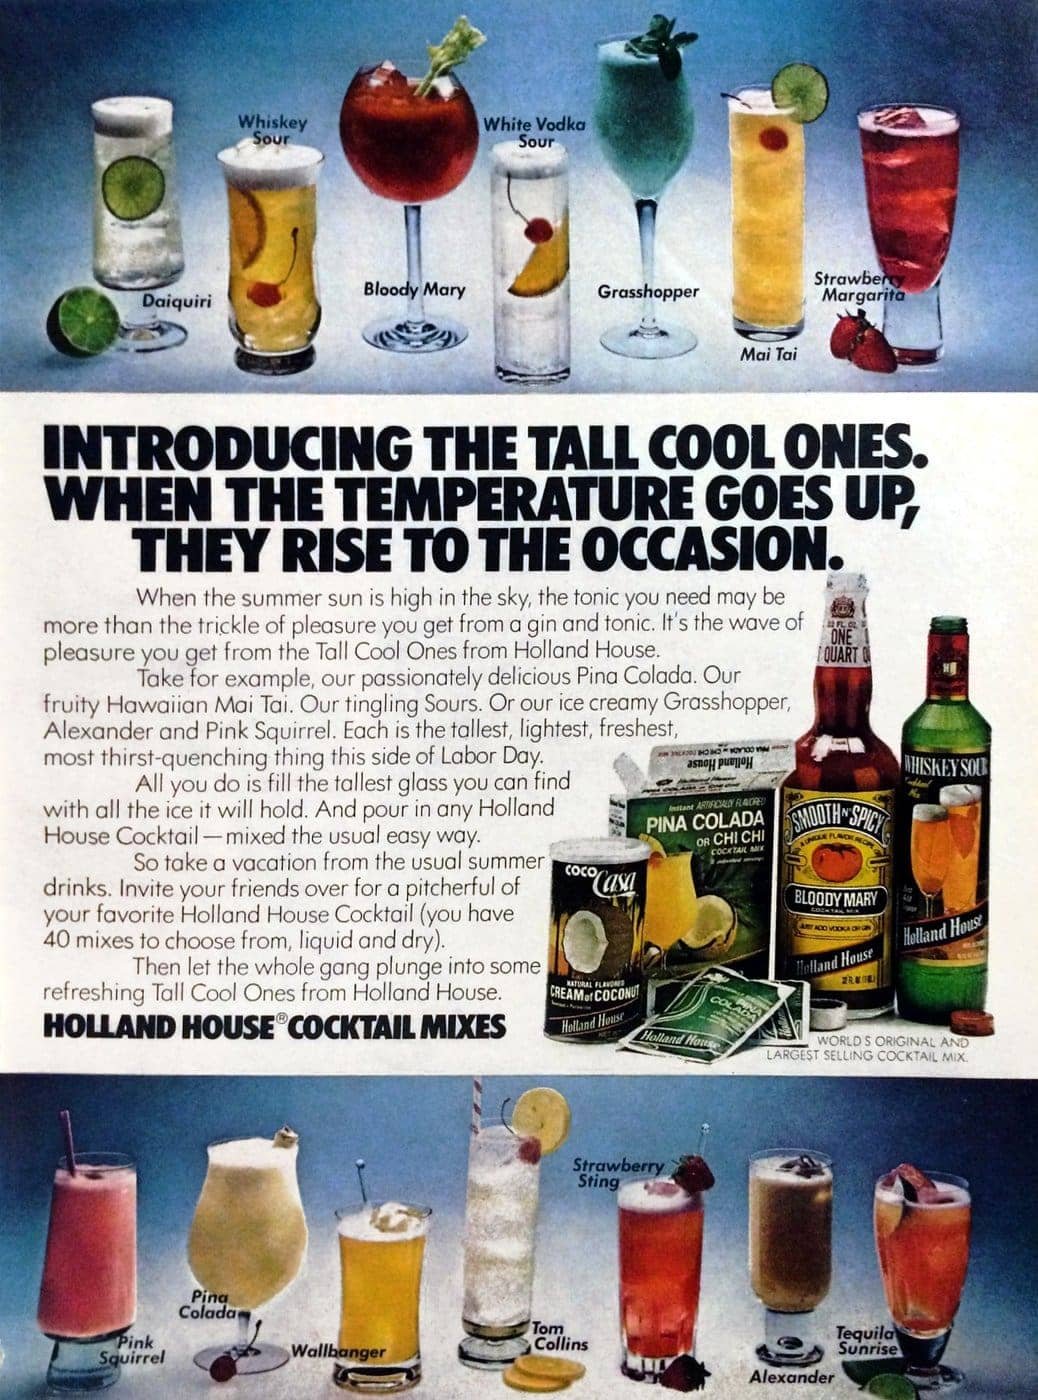 Vintage 1970s Holland House cocktail mixes